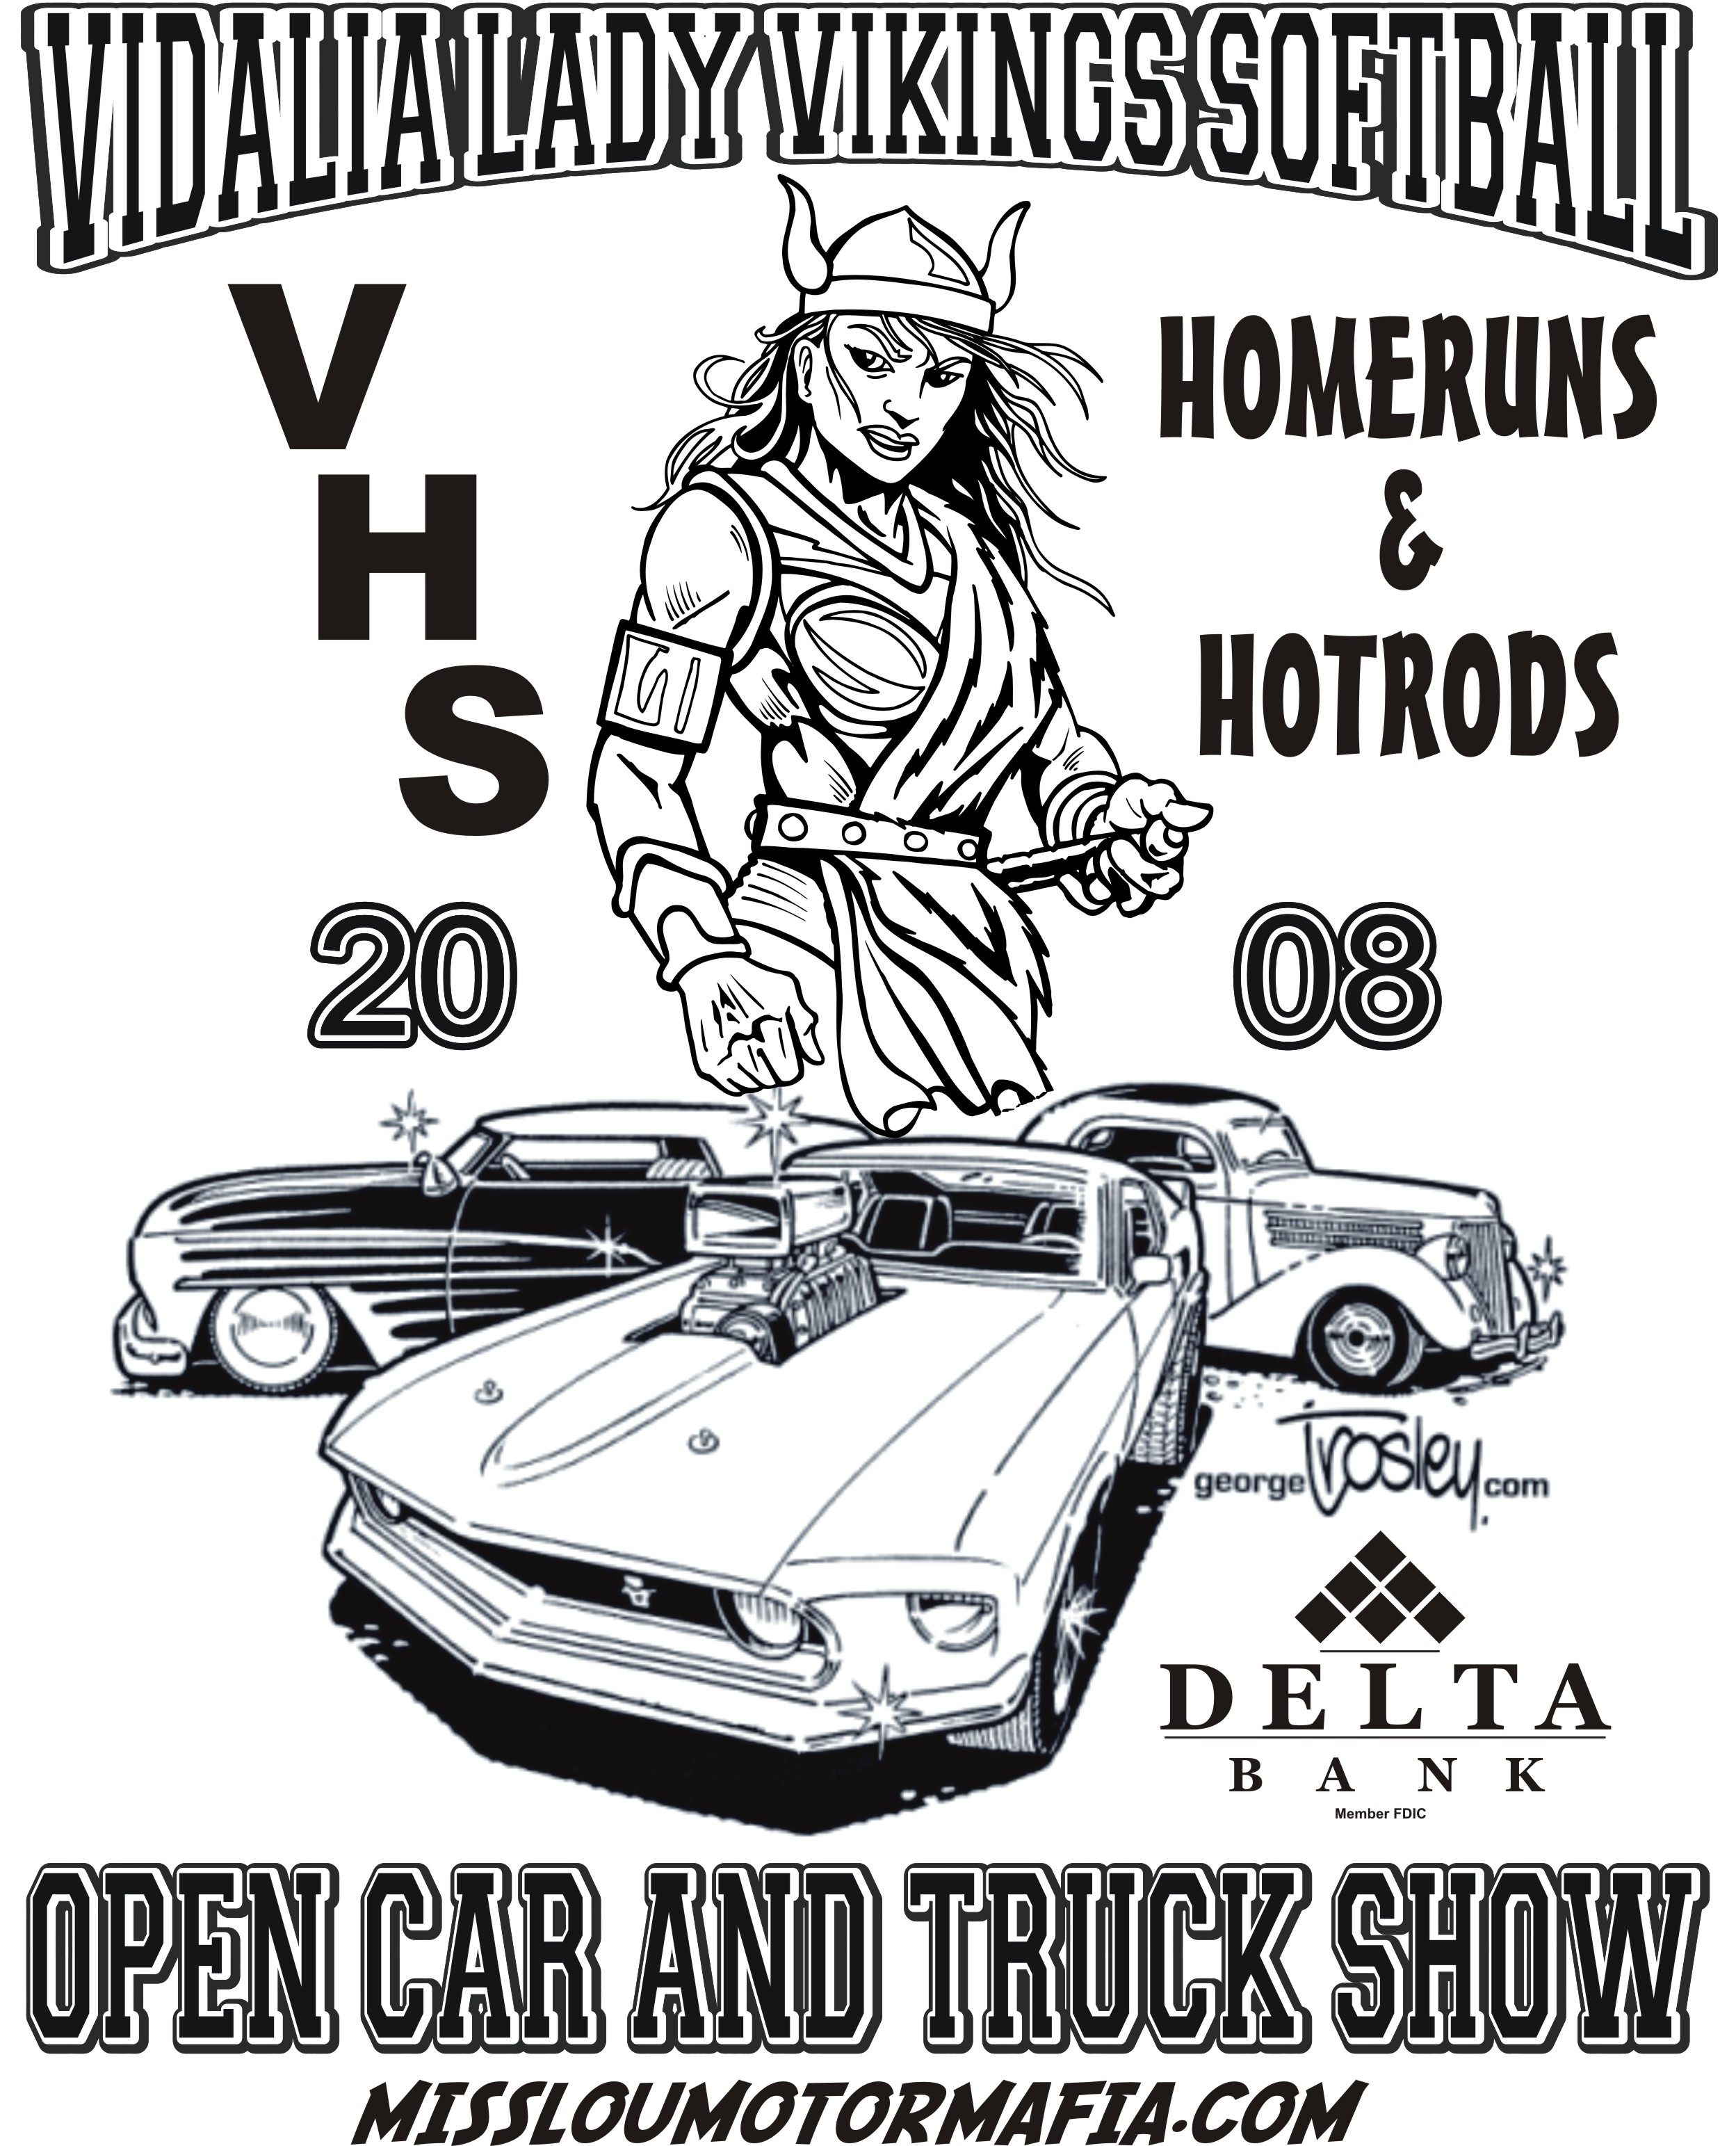 The Homeruns & Hotrods Event